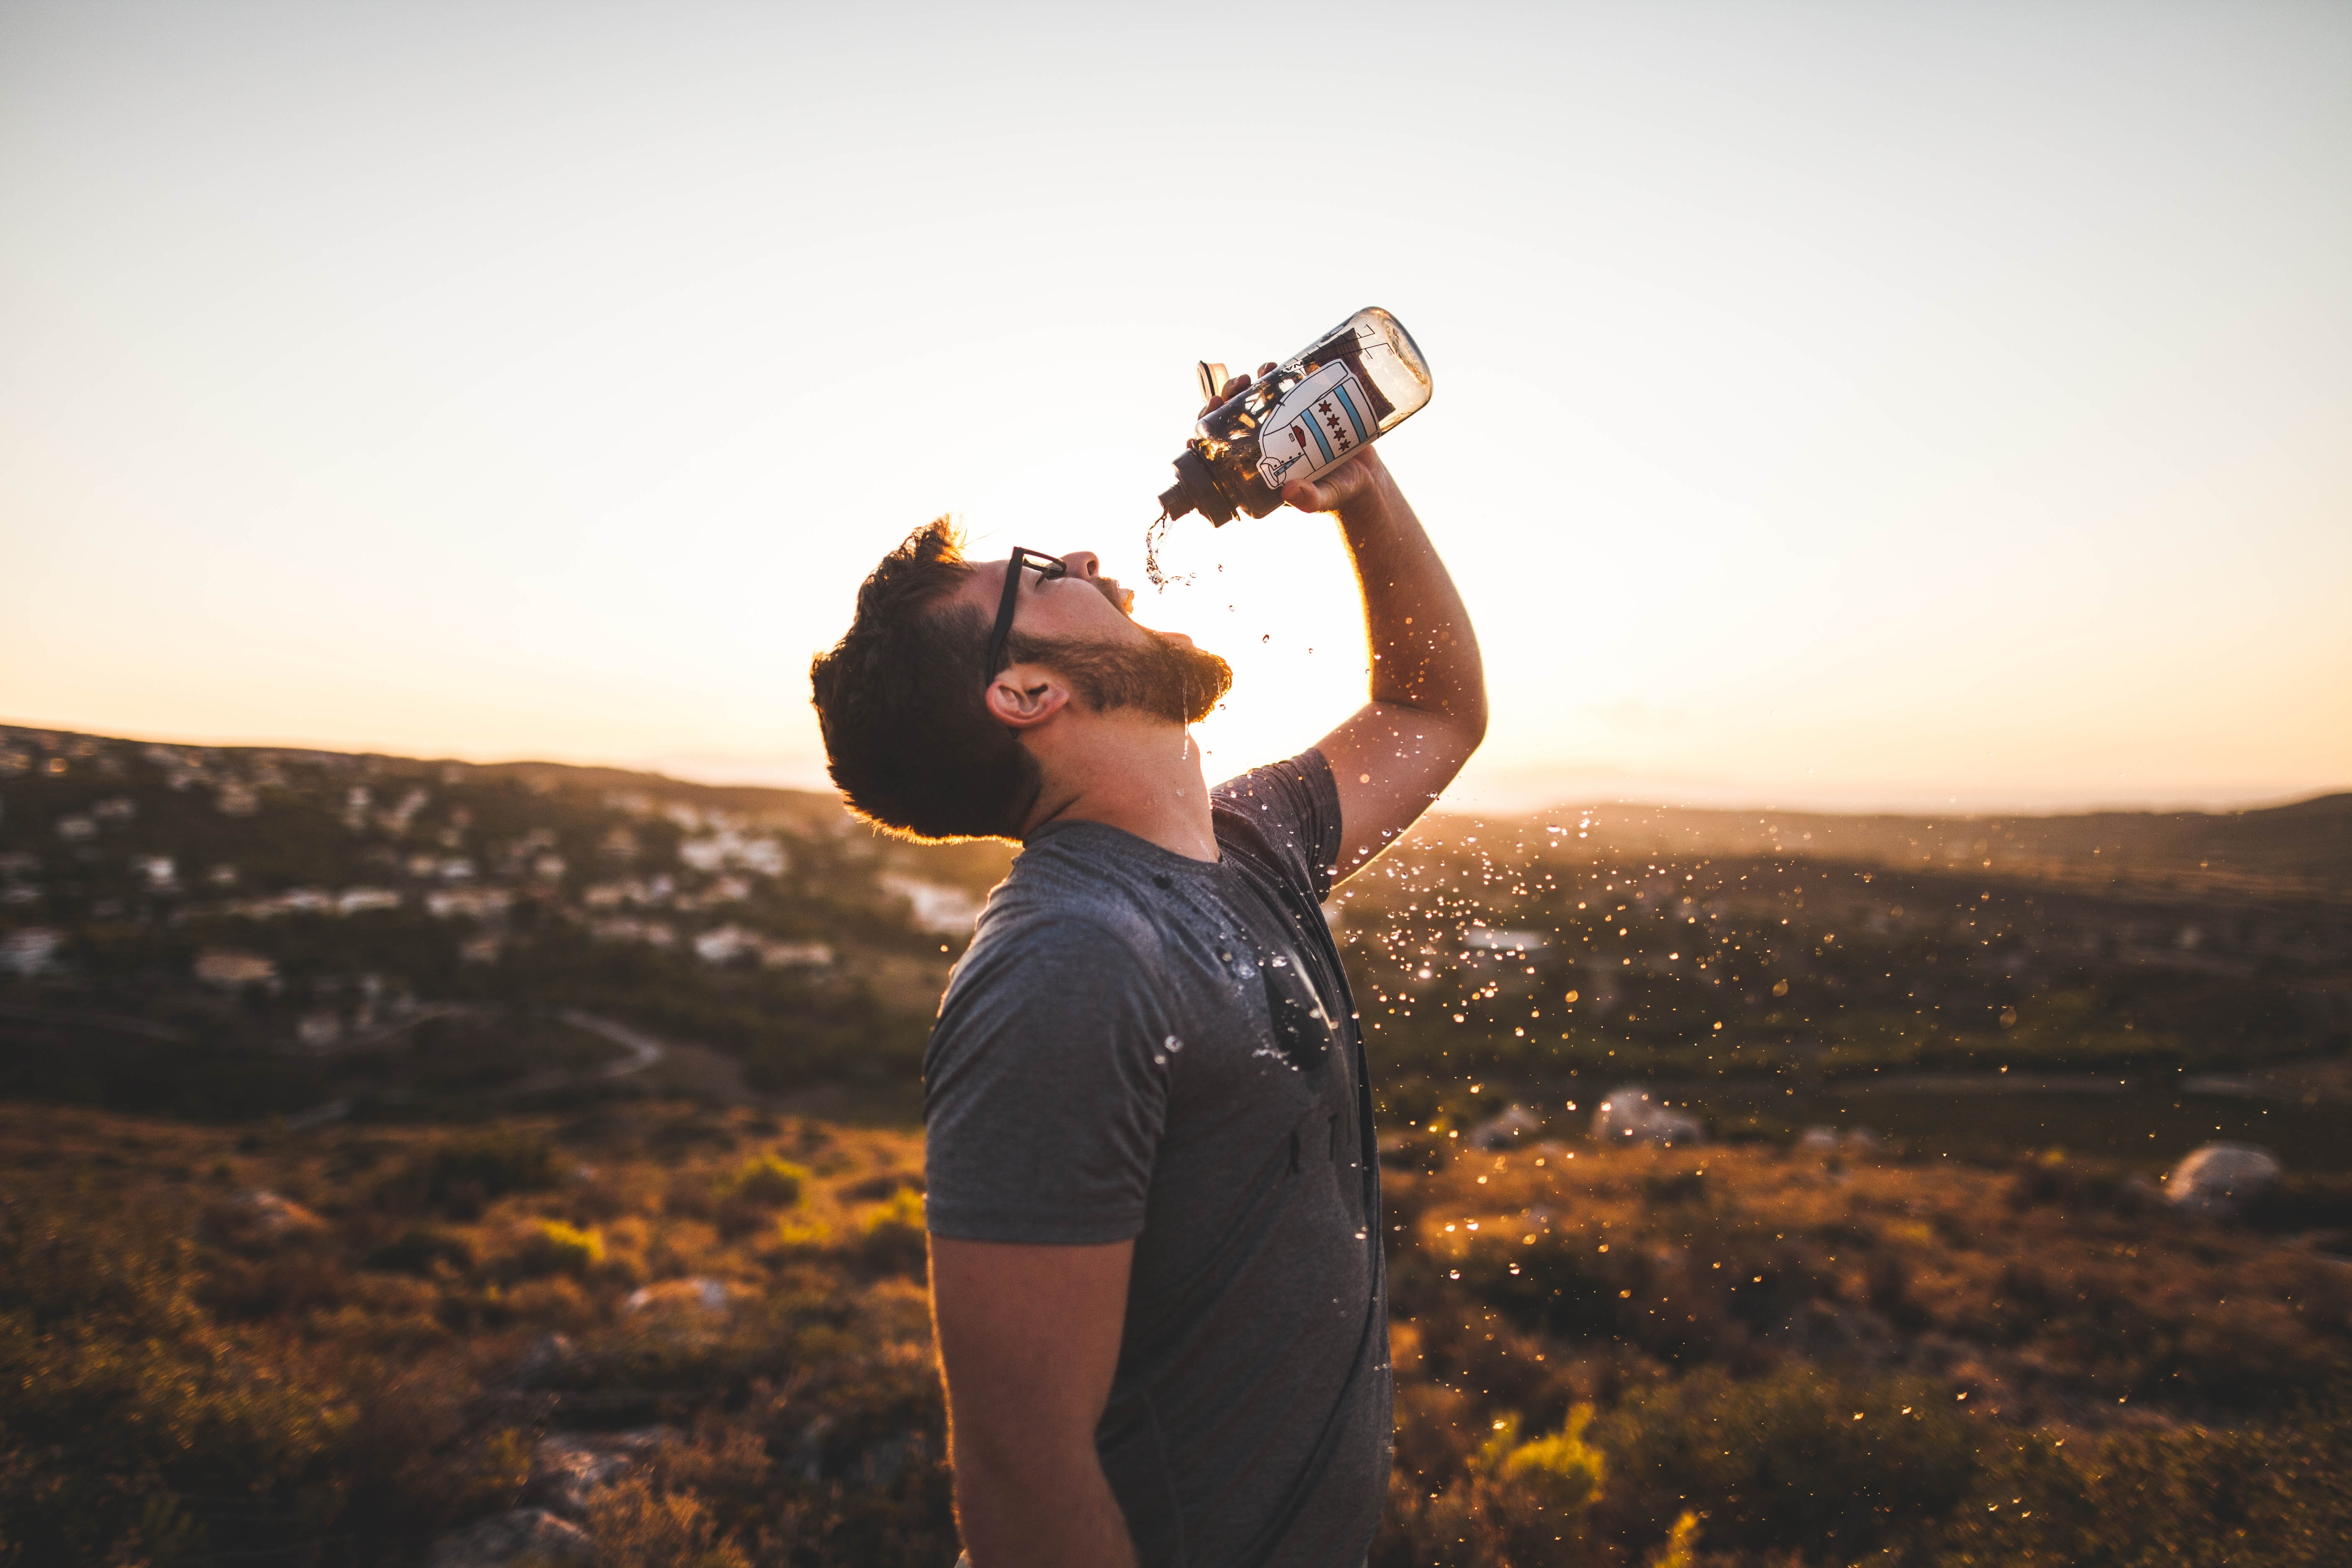 an image of a man drinking from a water bottle